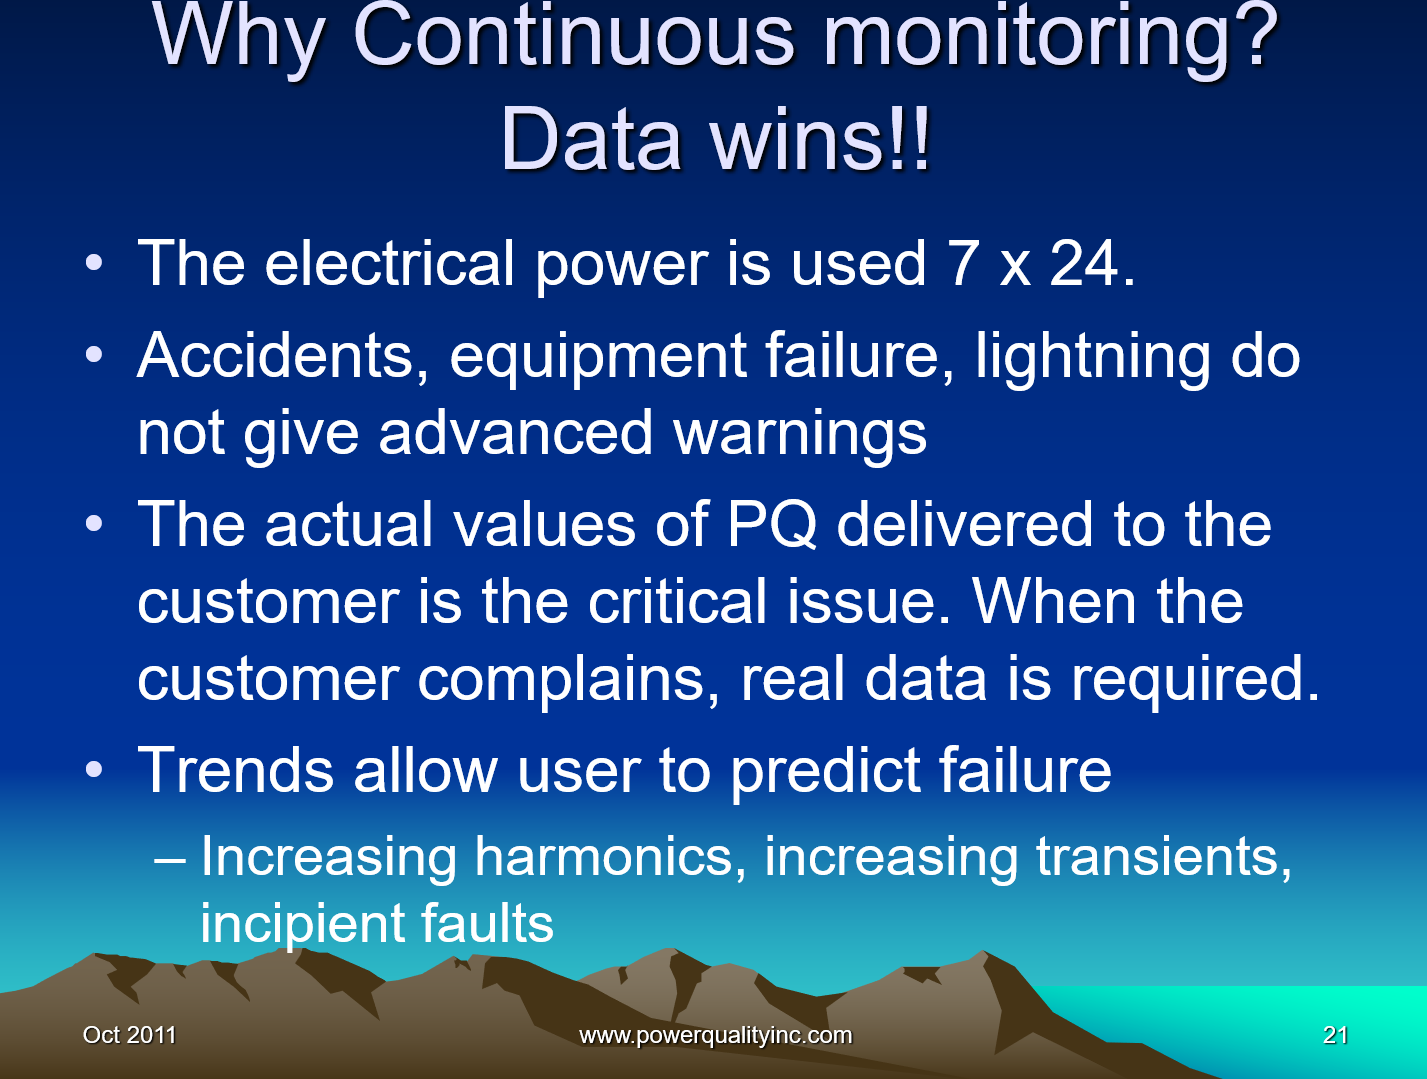 Power Quality the Economic Challenge for Utilities and Users_21